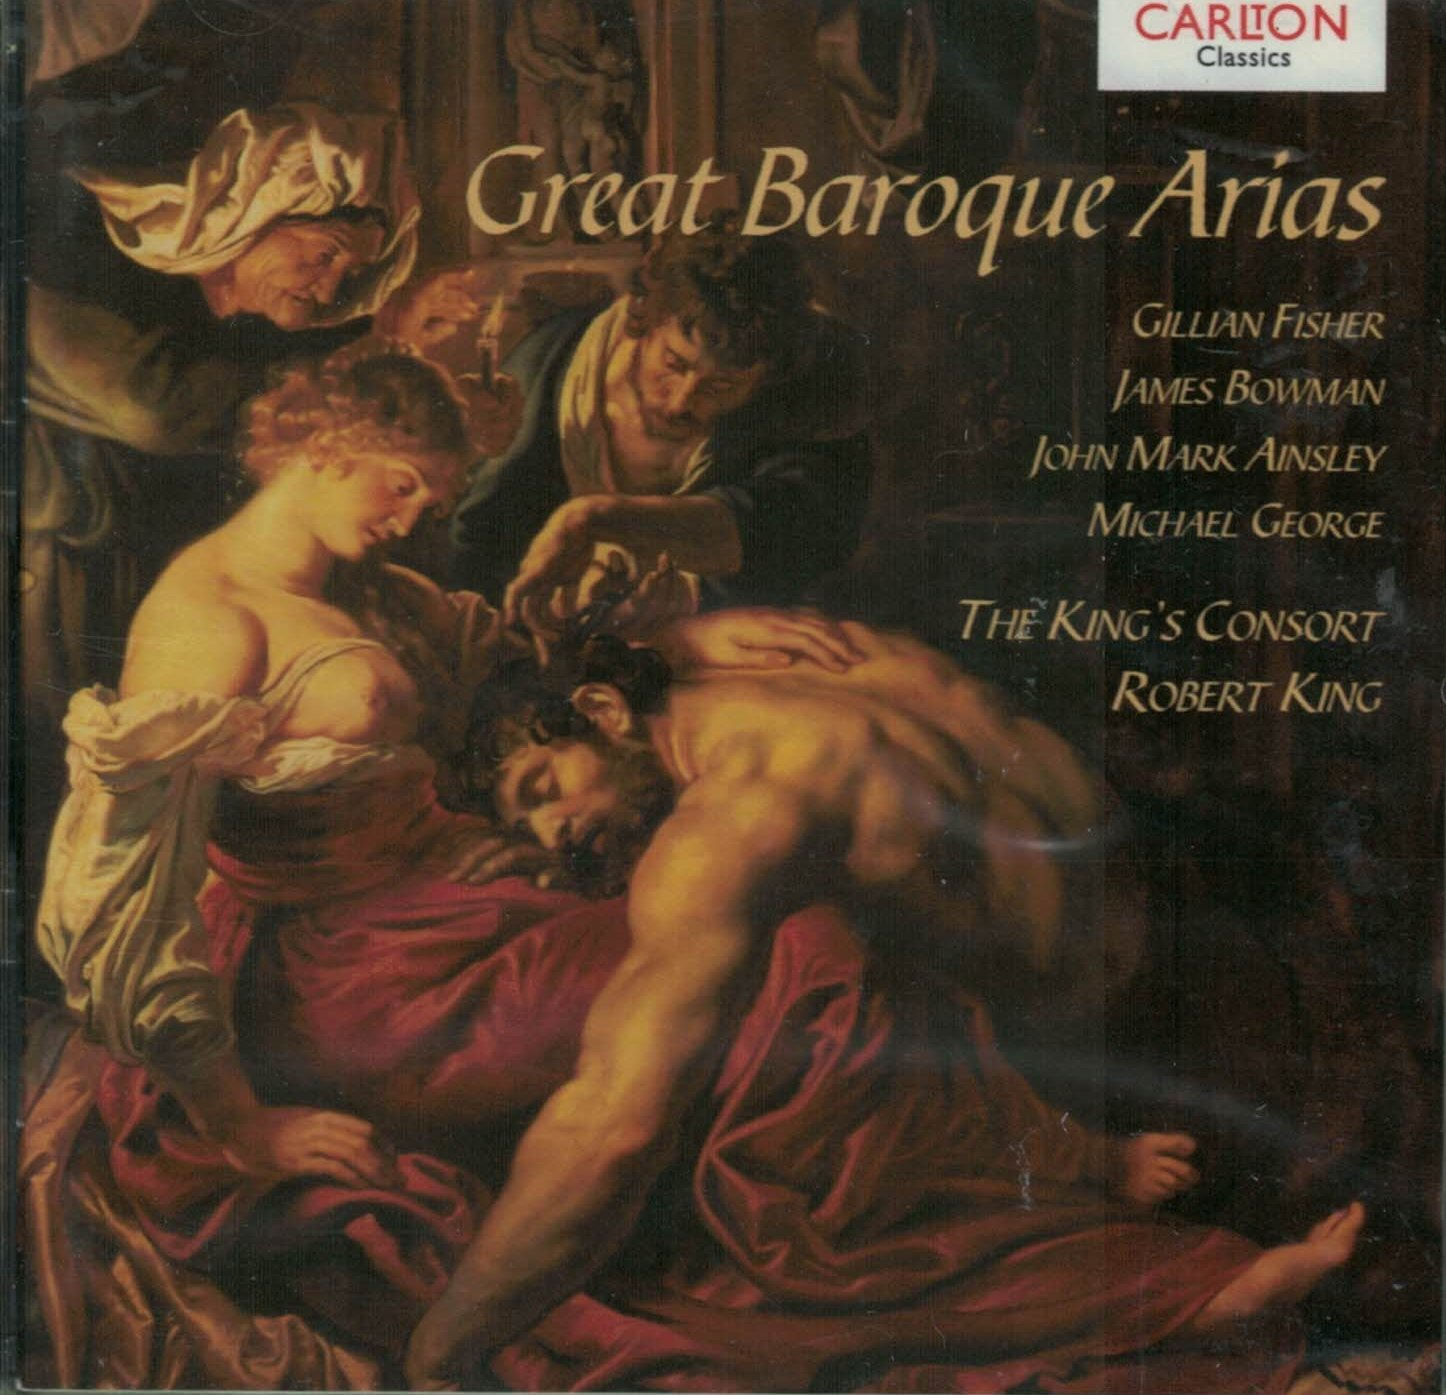 Great Baroque Arias